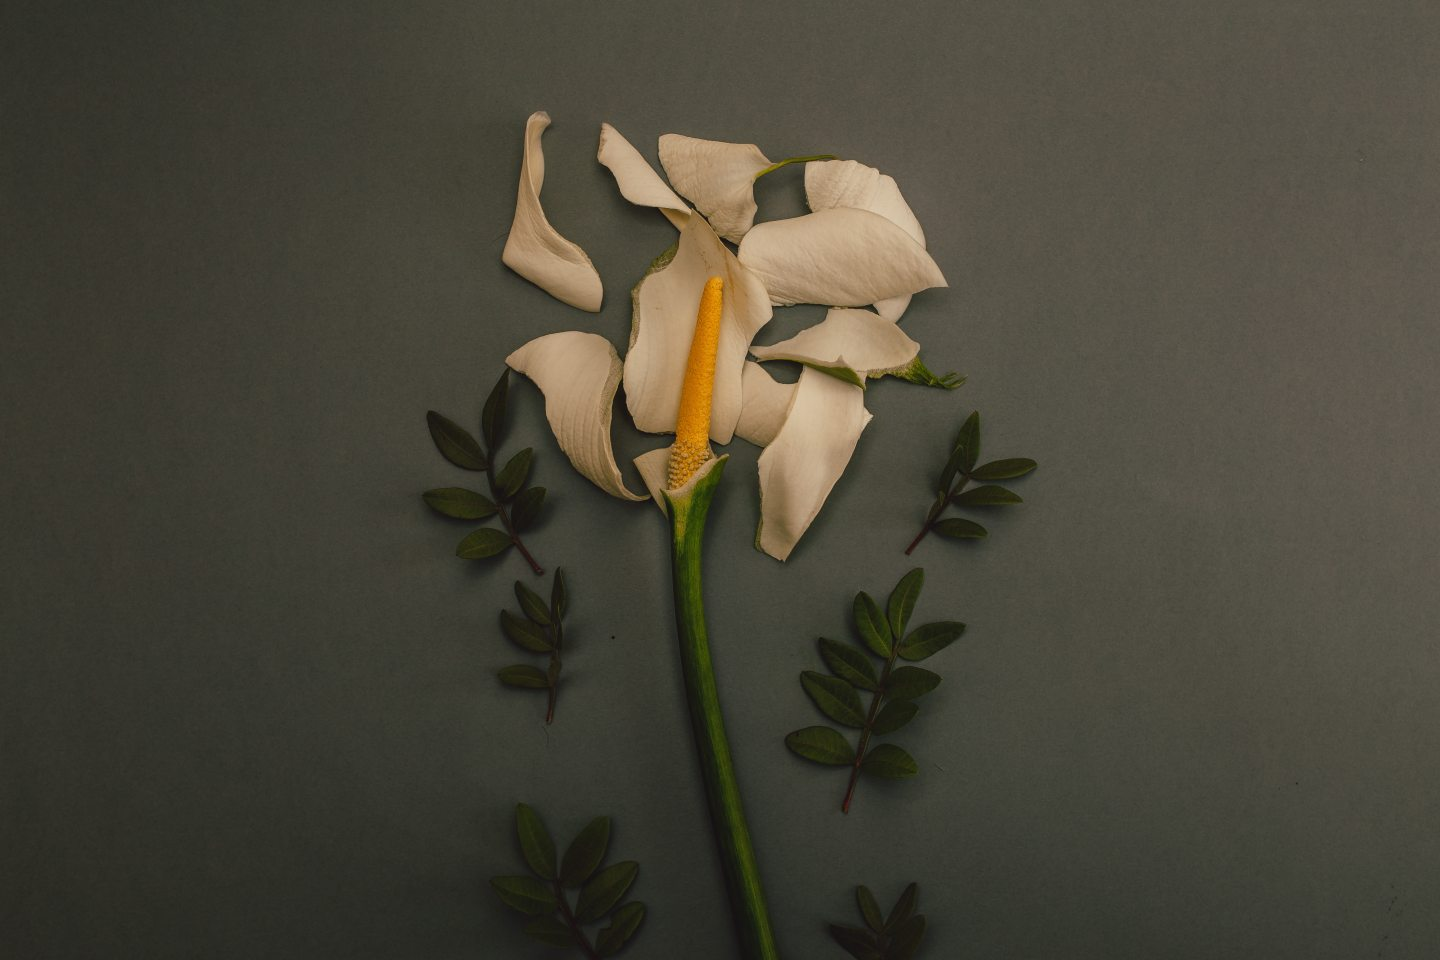 https://www.pexels.com/photo/white-flower-on-grey-background-922926/